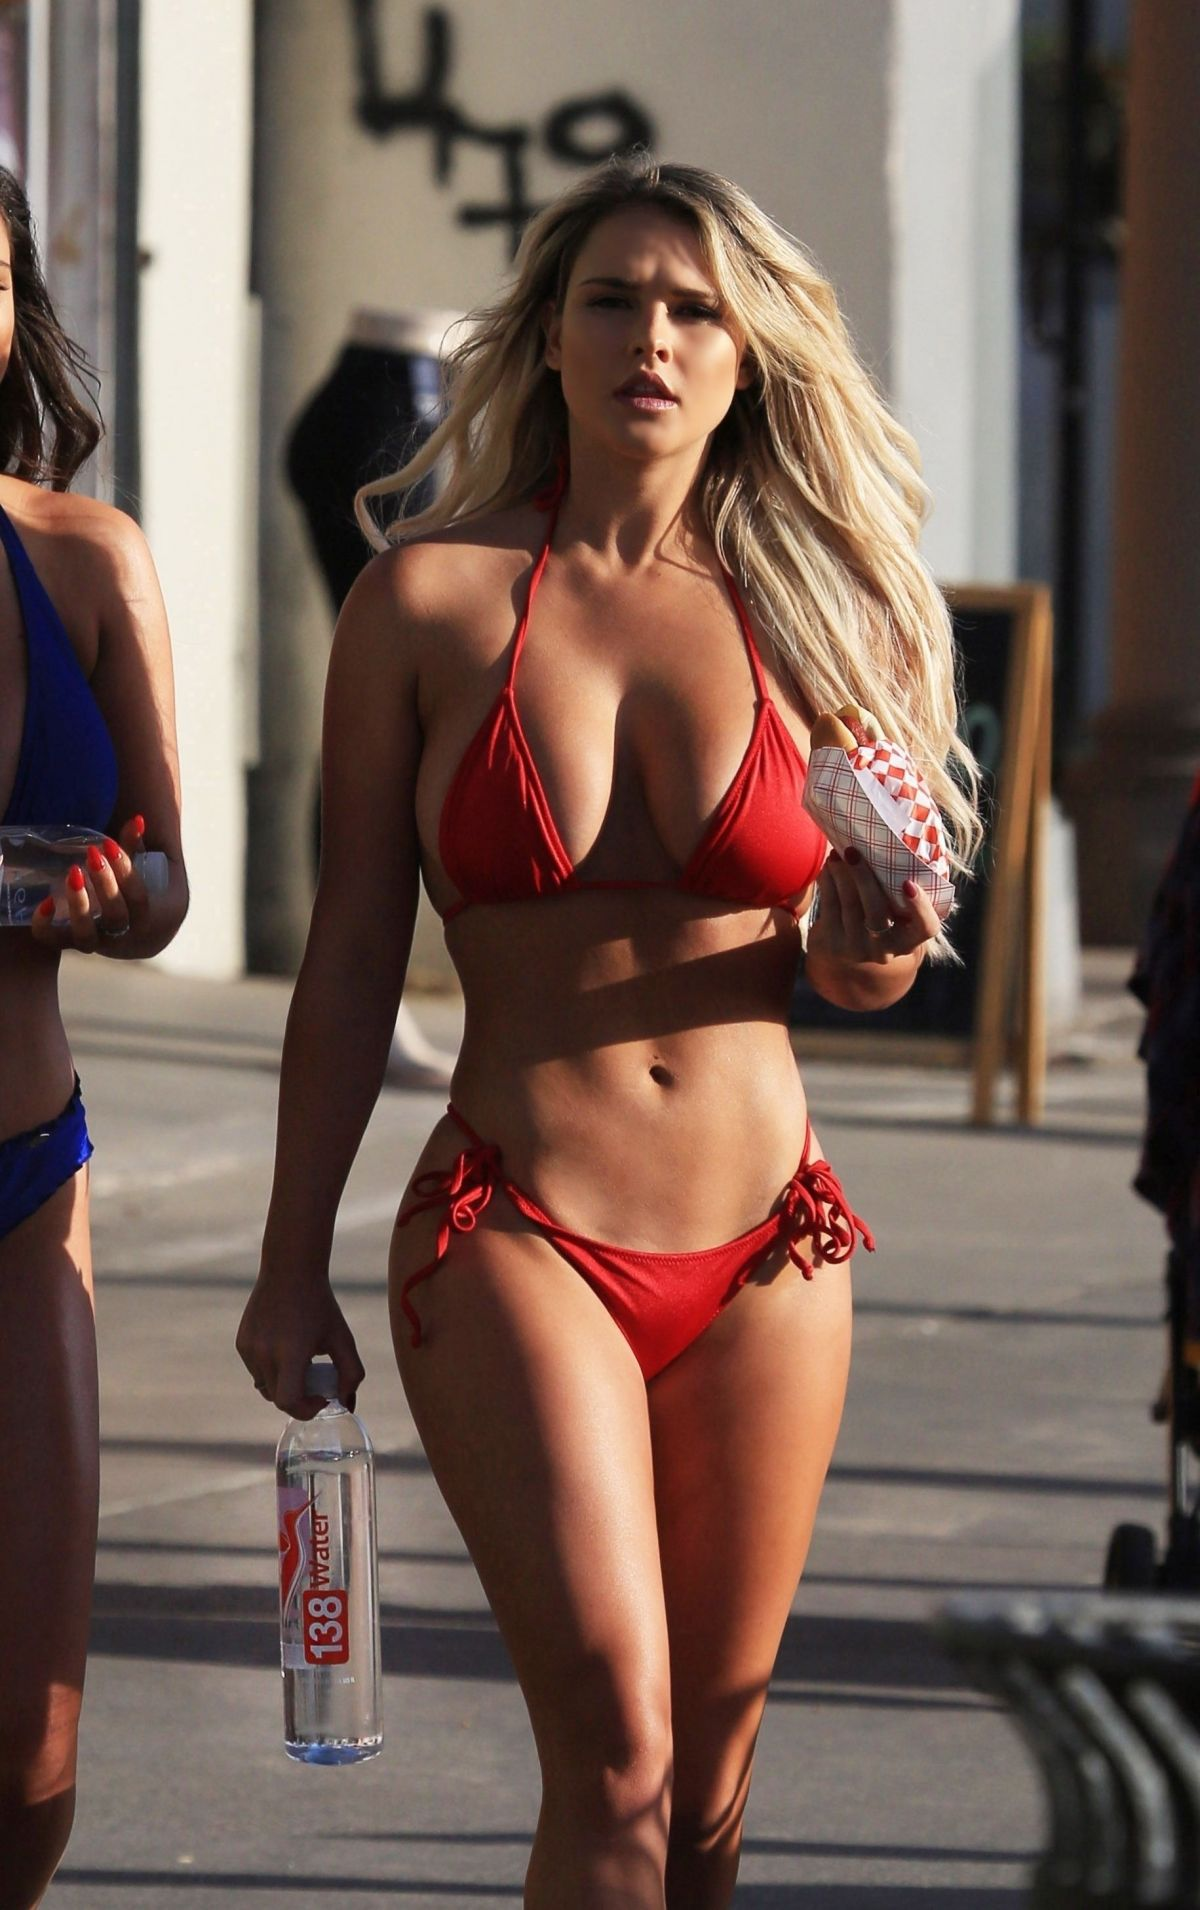 Jamie Leigh and Kinsey Wolanski – 138 Water Bikini Photoshoot in Venice Beach Pic 35 of 35